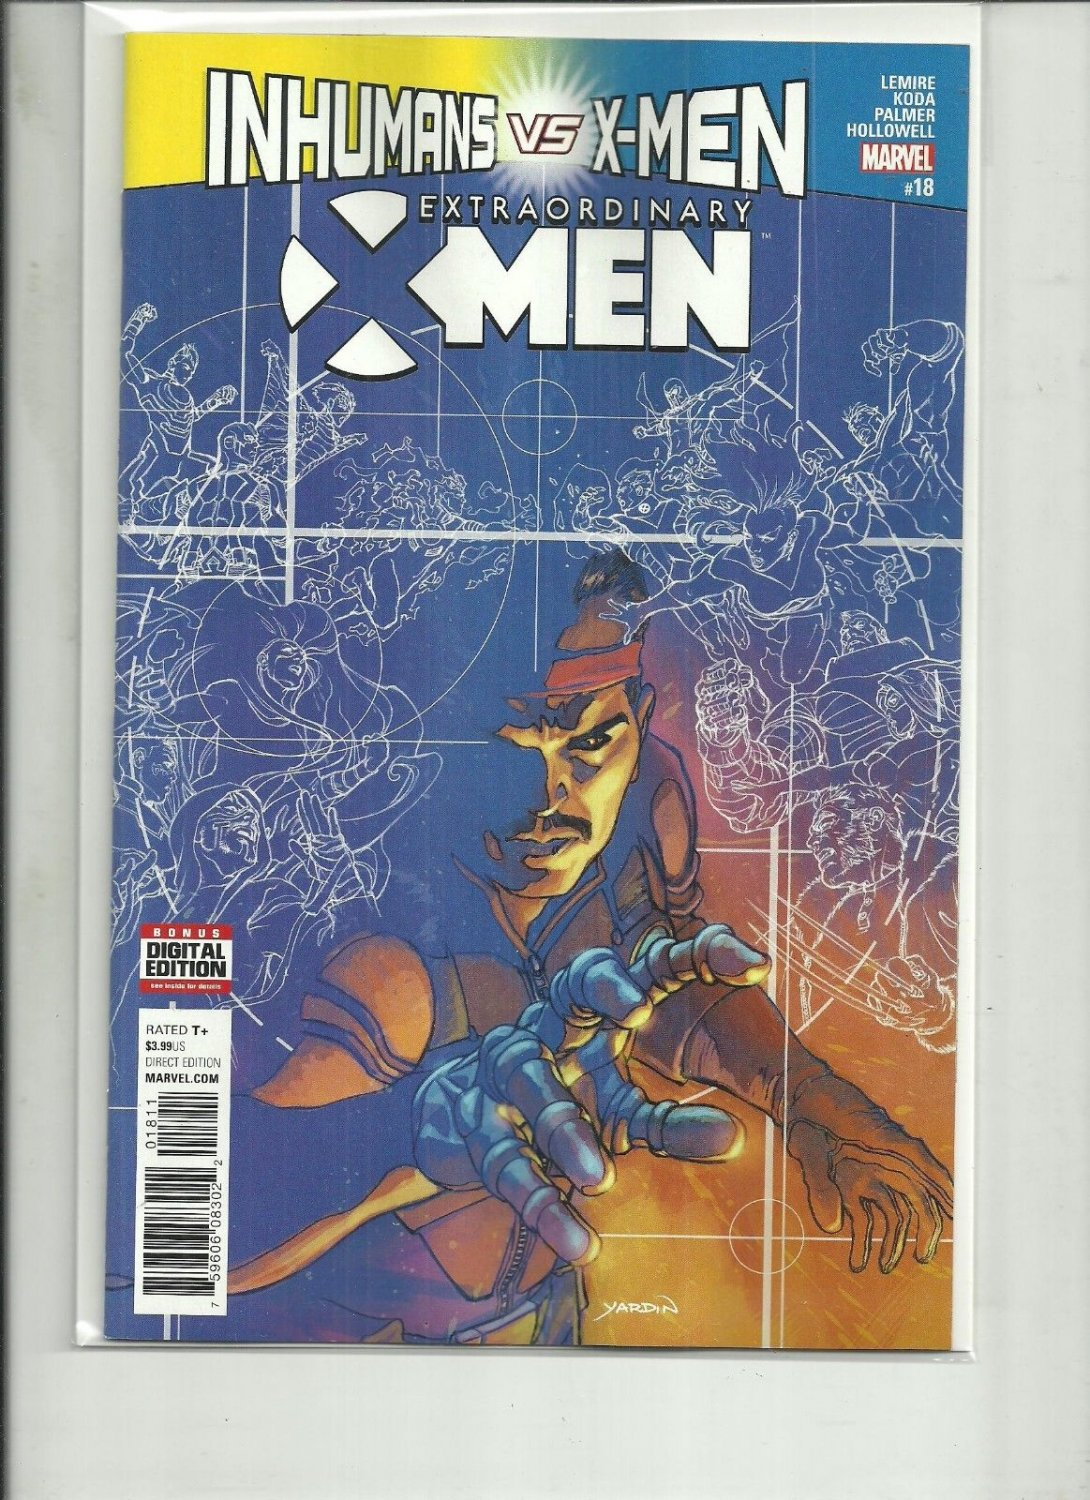 EXTRAORDINARY X-Men #18 INHUMANS VS X-MEN MARVEL COMICS 2017 NM 1ST PRINT